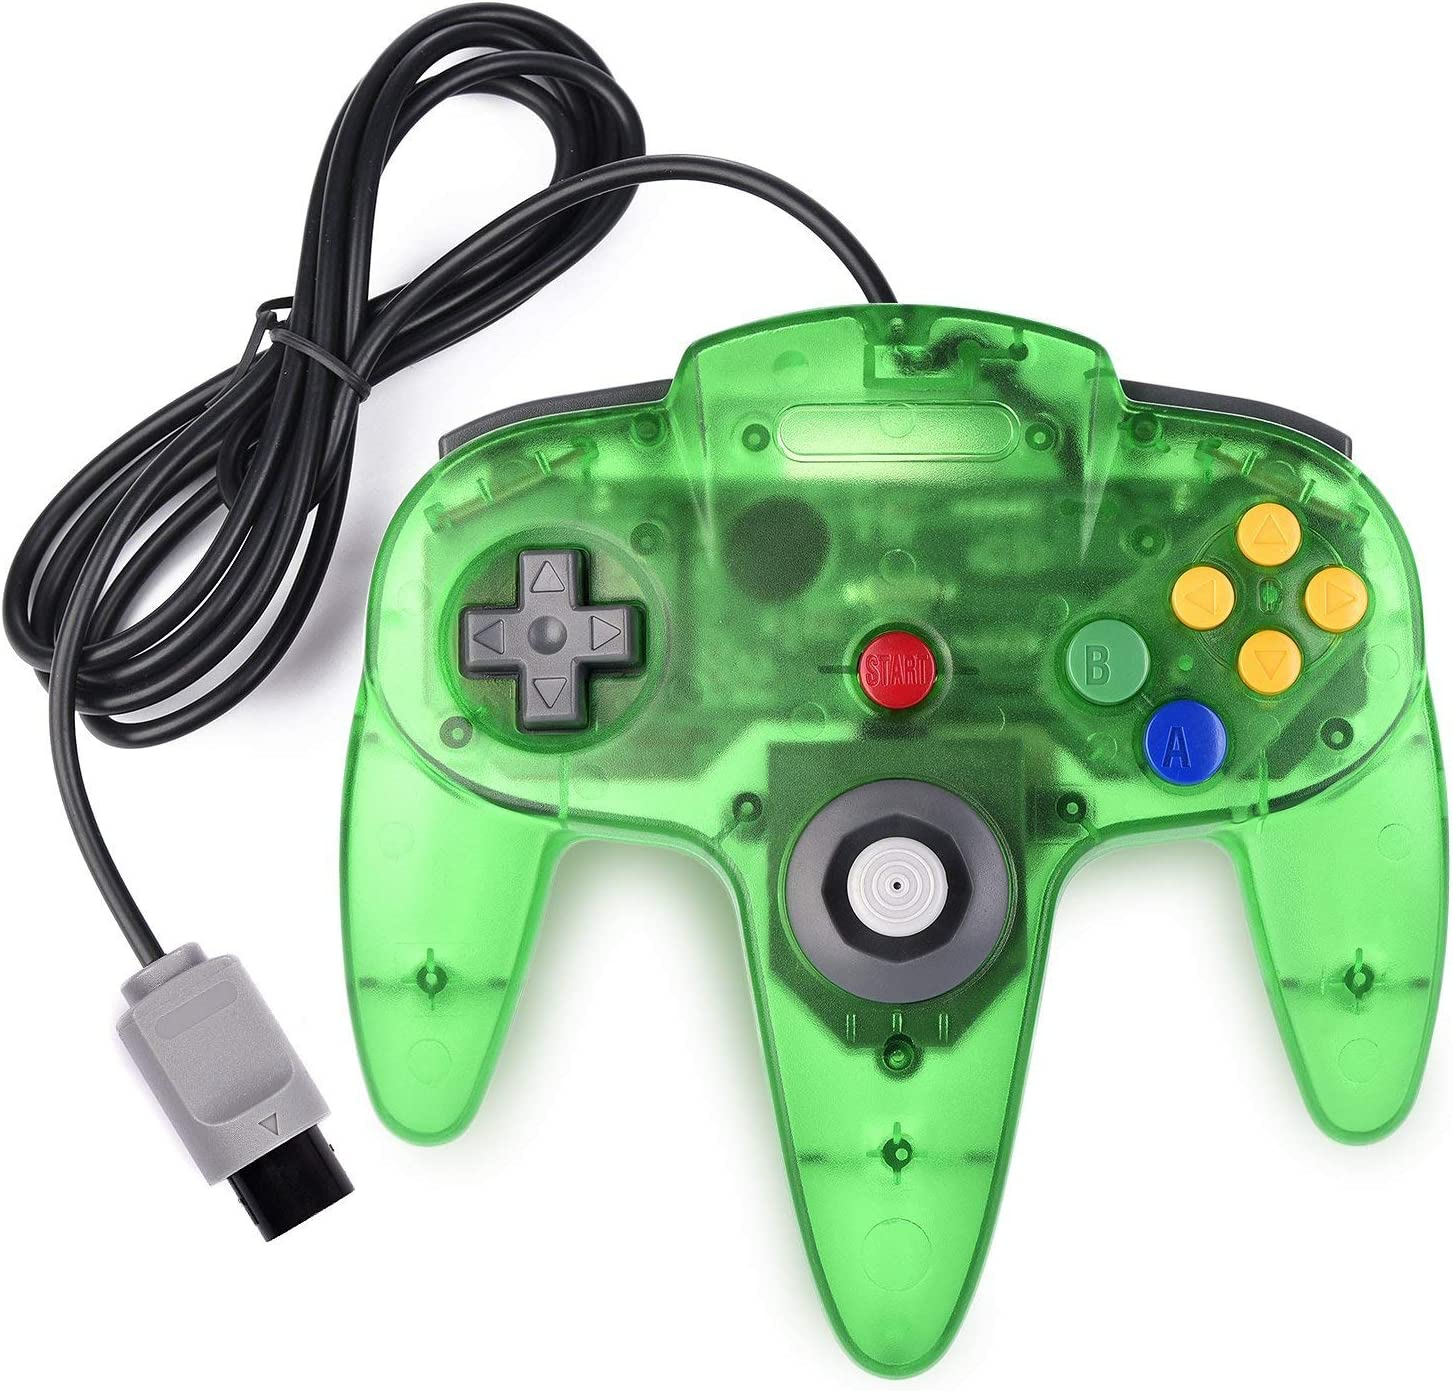 miadore Classic N64 Controller Joystick Remote for N64 Video Game System N64 Console-Jungle Green